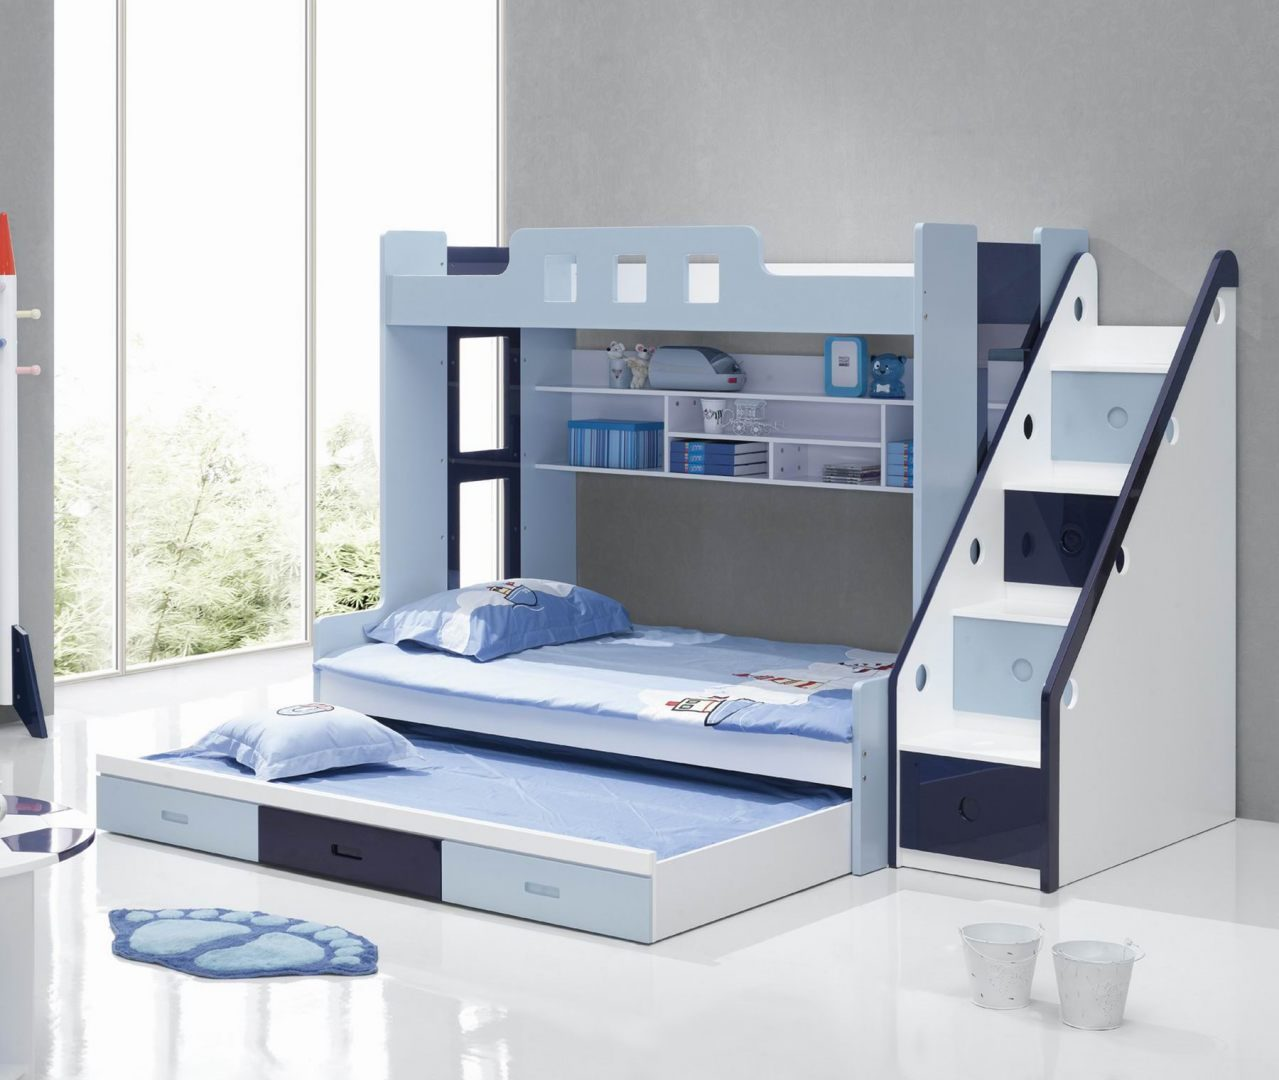 Bunk Bed with Trundle 1279 x 1080